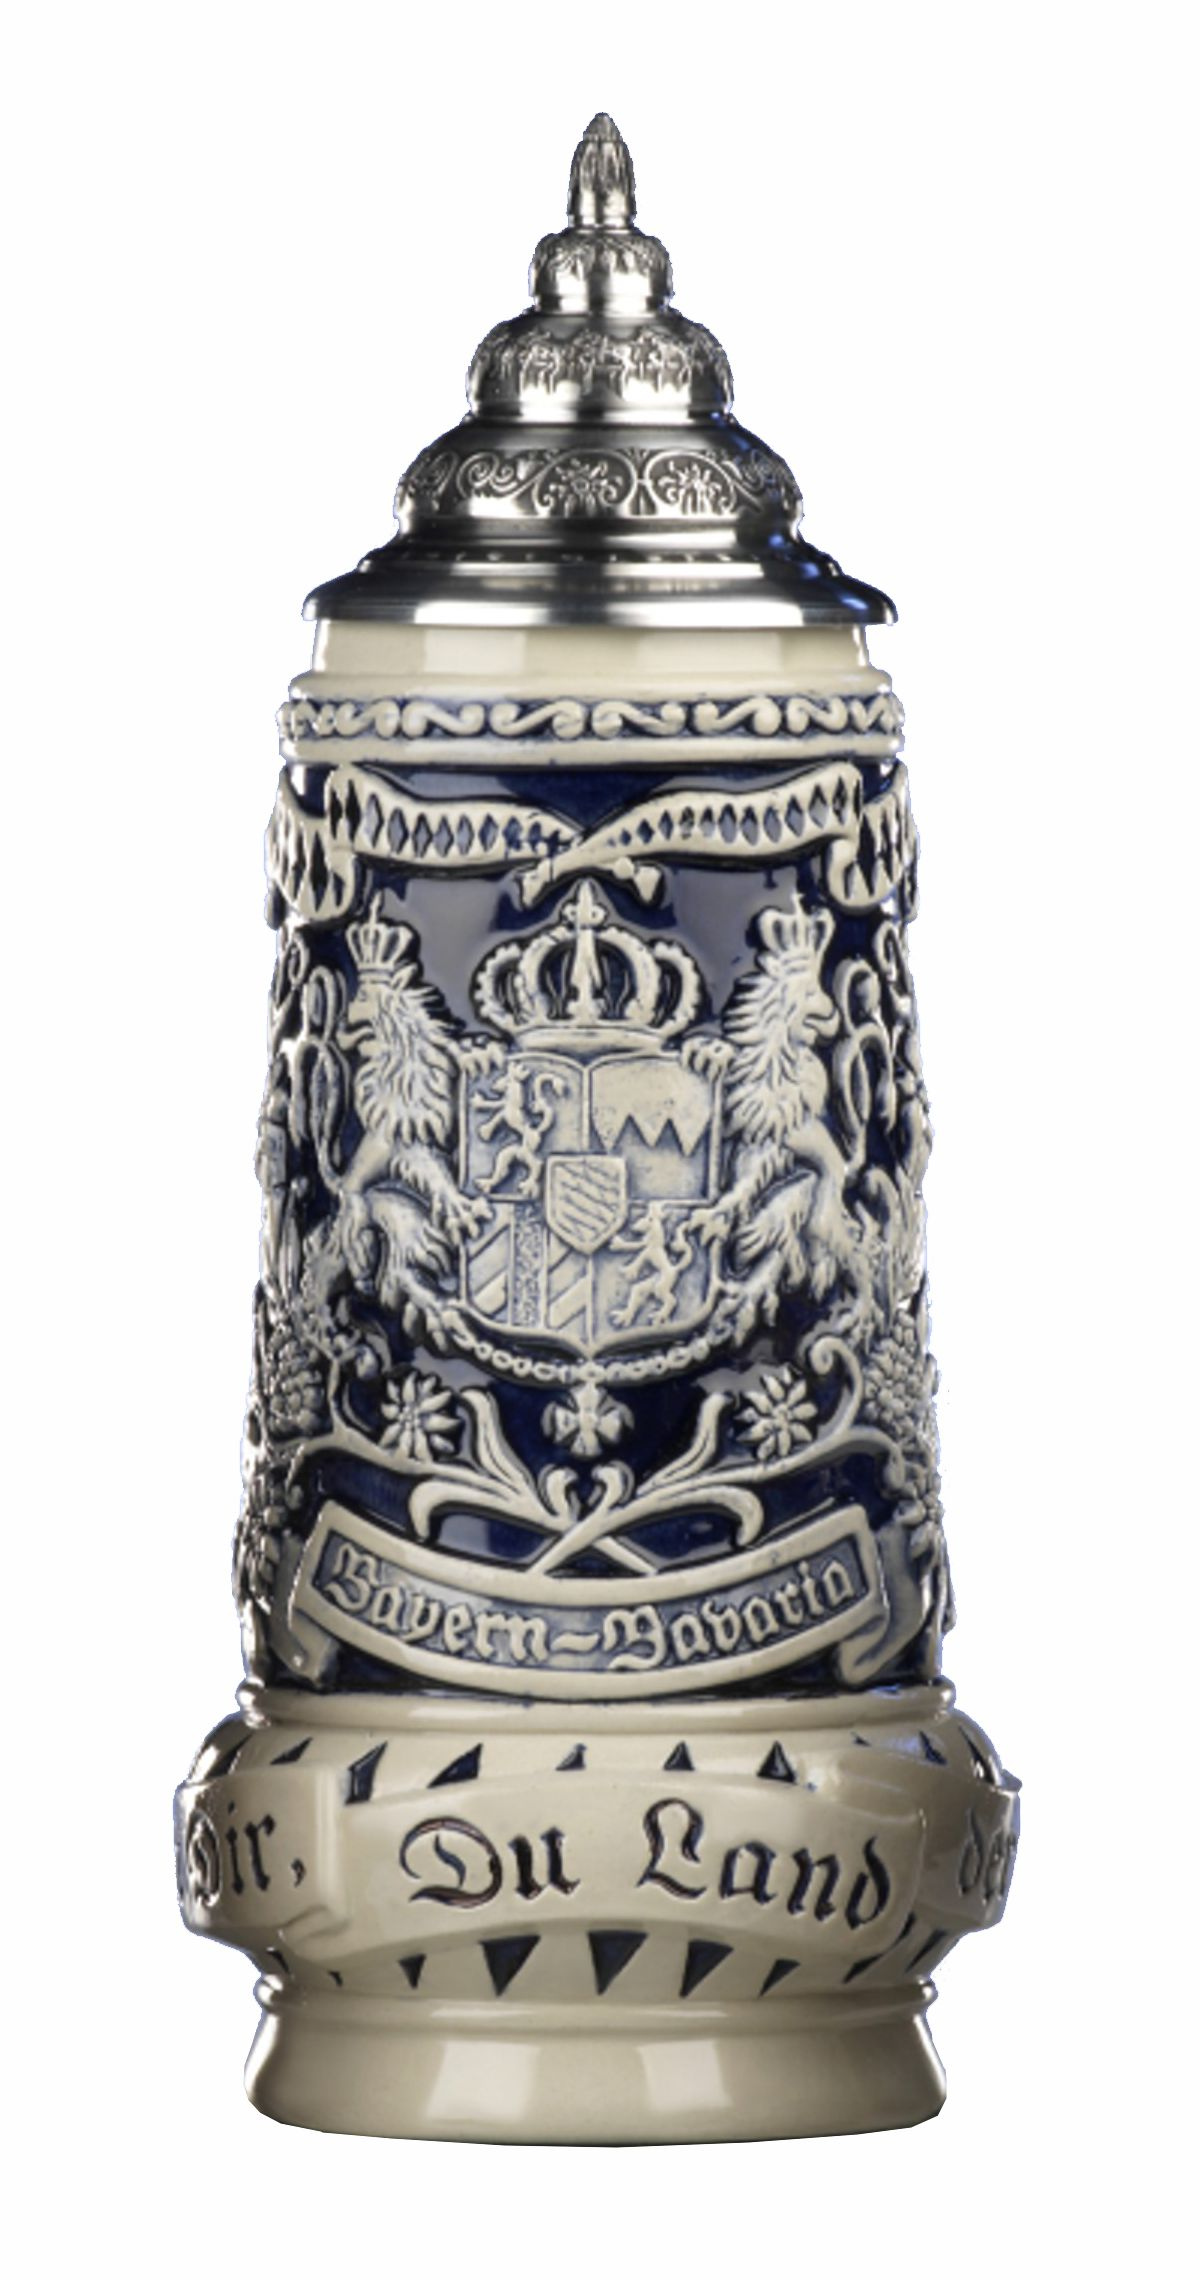 flanked by views of Munich and Neuschwanstein Castle State Coat of Arms in centre panel Land of the Bavarians 0.5 lite King German Beer Stein Bavaria Stein State Motto translated: God with you